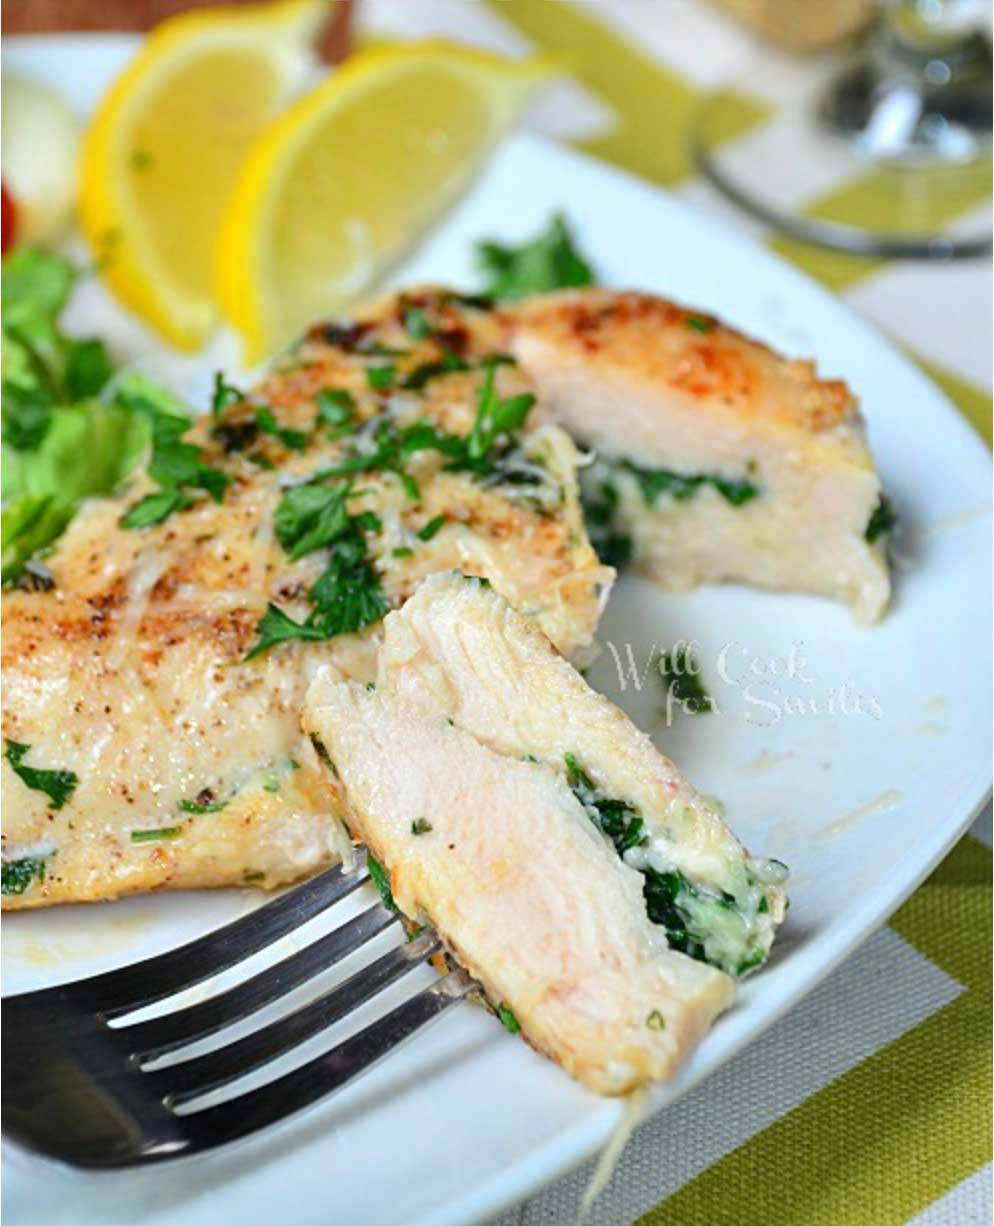 Easy chicken recipes your family will love! We've gathered some of the all-time most popular quick and healthy chicken recipes other bloggers have ever posted. From baked chicken to chicken casseroles, skillet chicken to slow cooker chicken, chicken fajitas to a unique and veggie-loaded chicken stir-fry … and more! These are some of the best chicken recipes ever - reader favorite recipes you'll want to make again and again. Perfect dinners for busy weeknights! | www.TwoHealthyKitchens.com